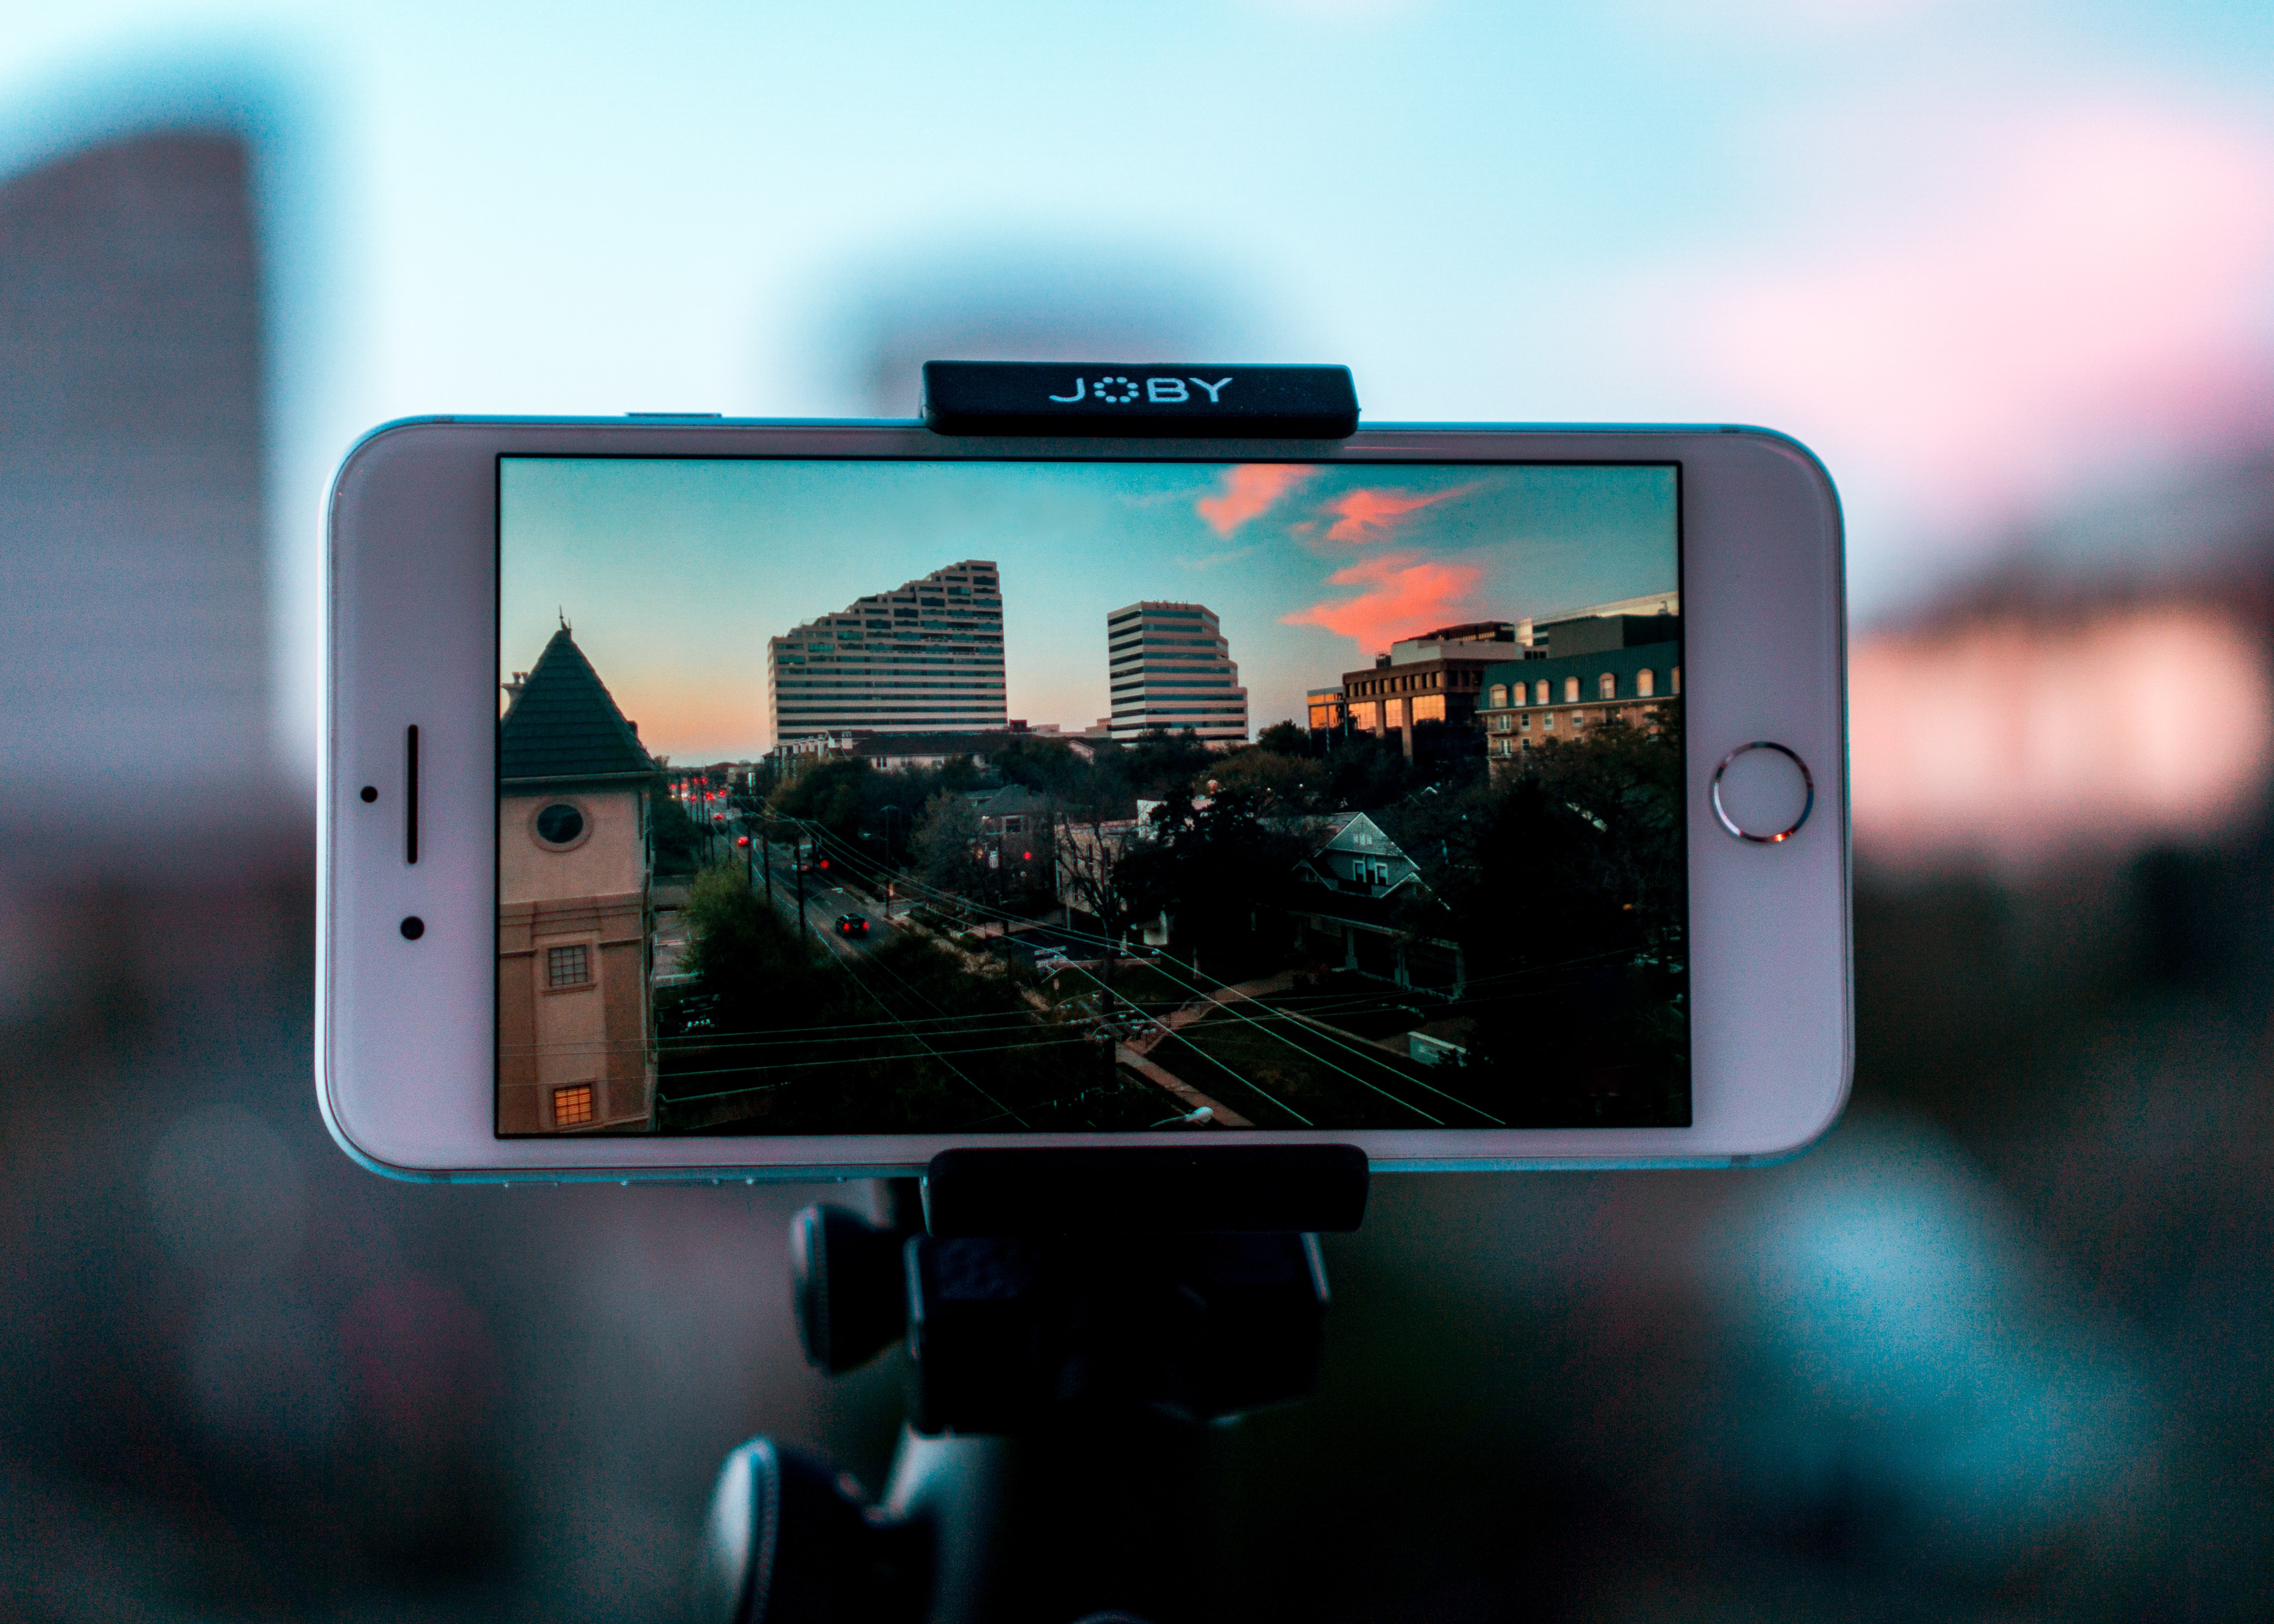 A phone on tripod taking a picture outside the window